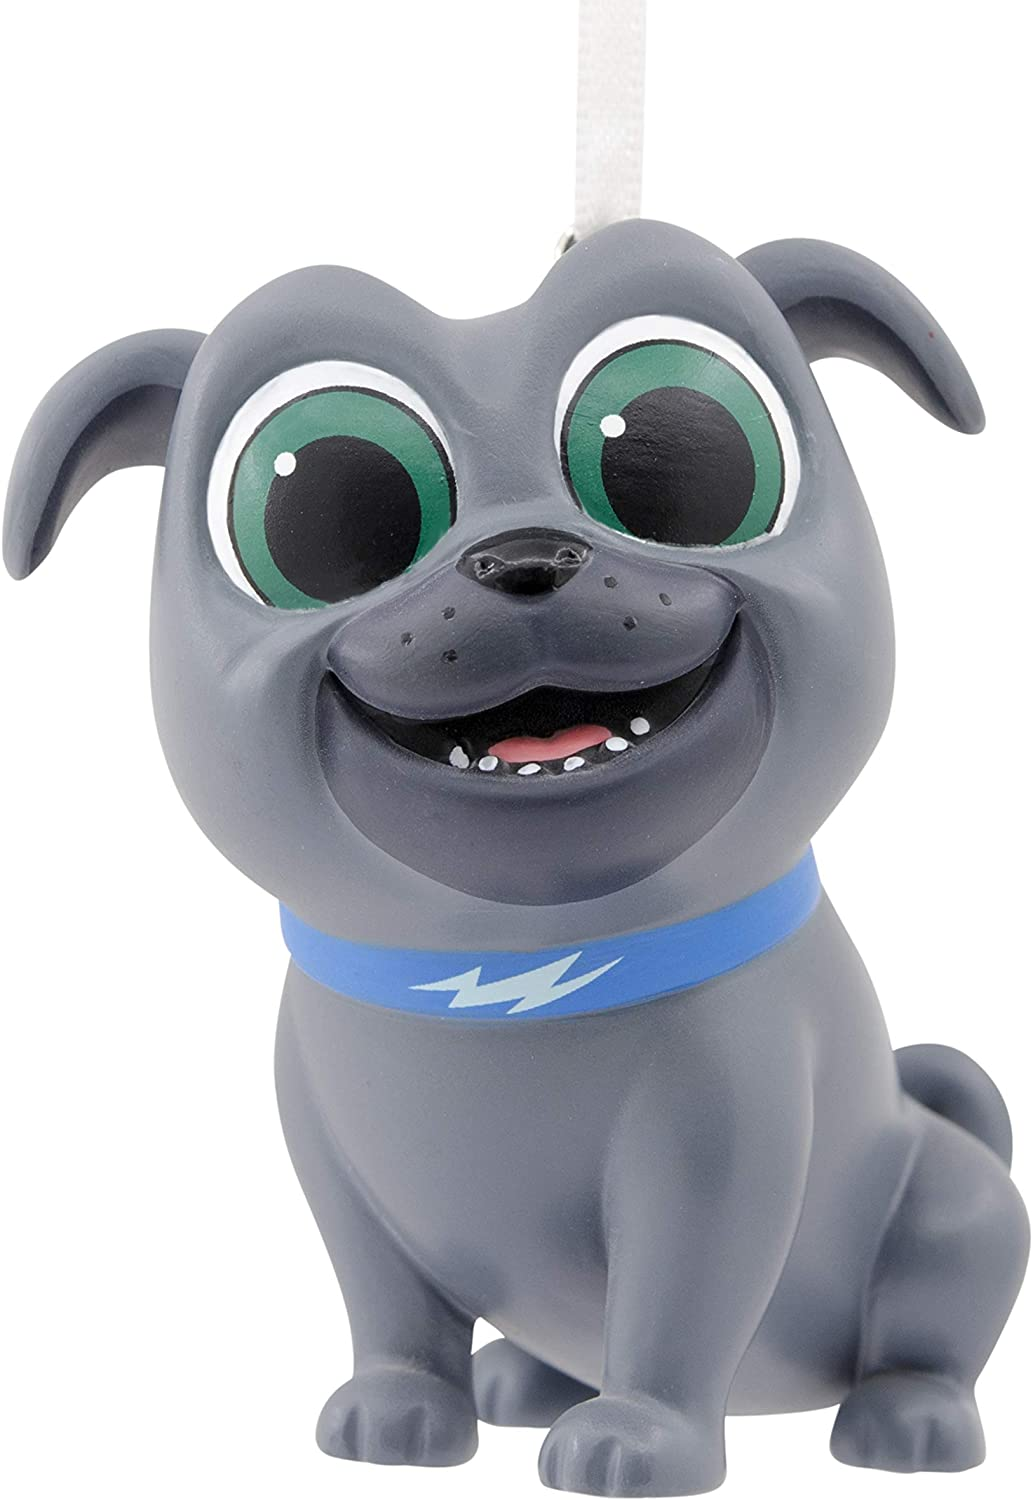 Hallmark Christmas Ornaments, Disney Junior Puppy Dog Pals Bingo Ornament